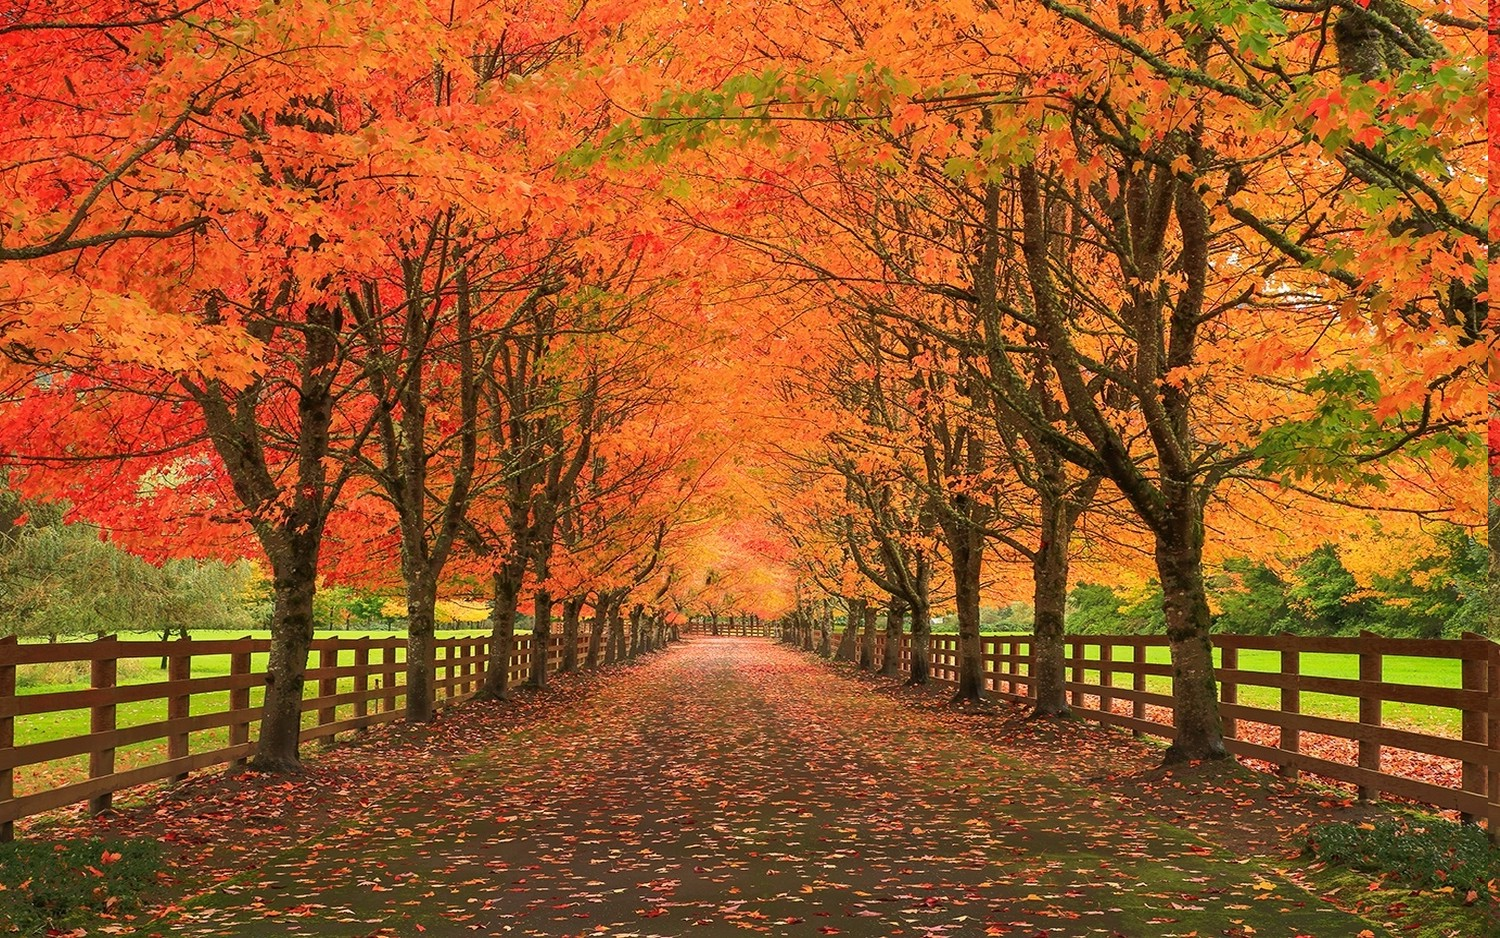 Falling Leaves Hd Live Wallpaper Nature Landscape Fall Leaves Road Fence Trees Grass